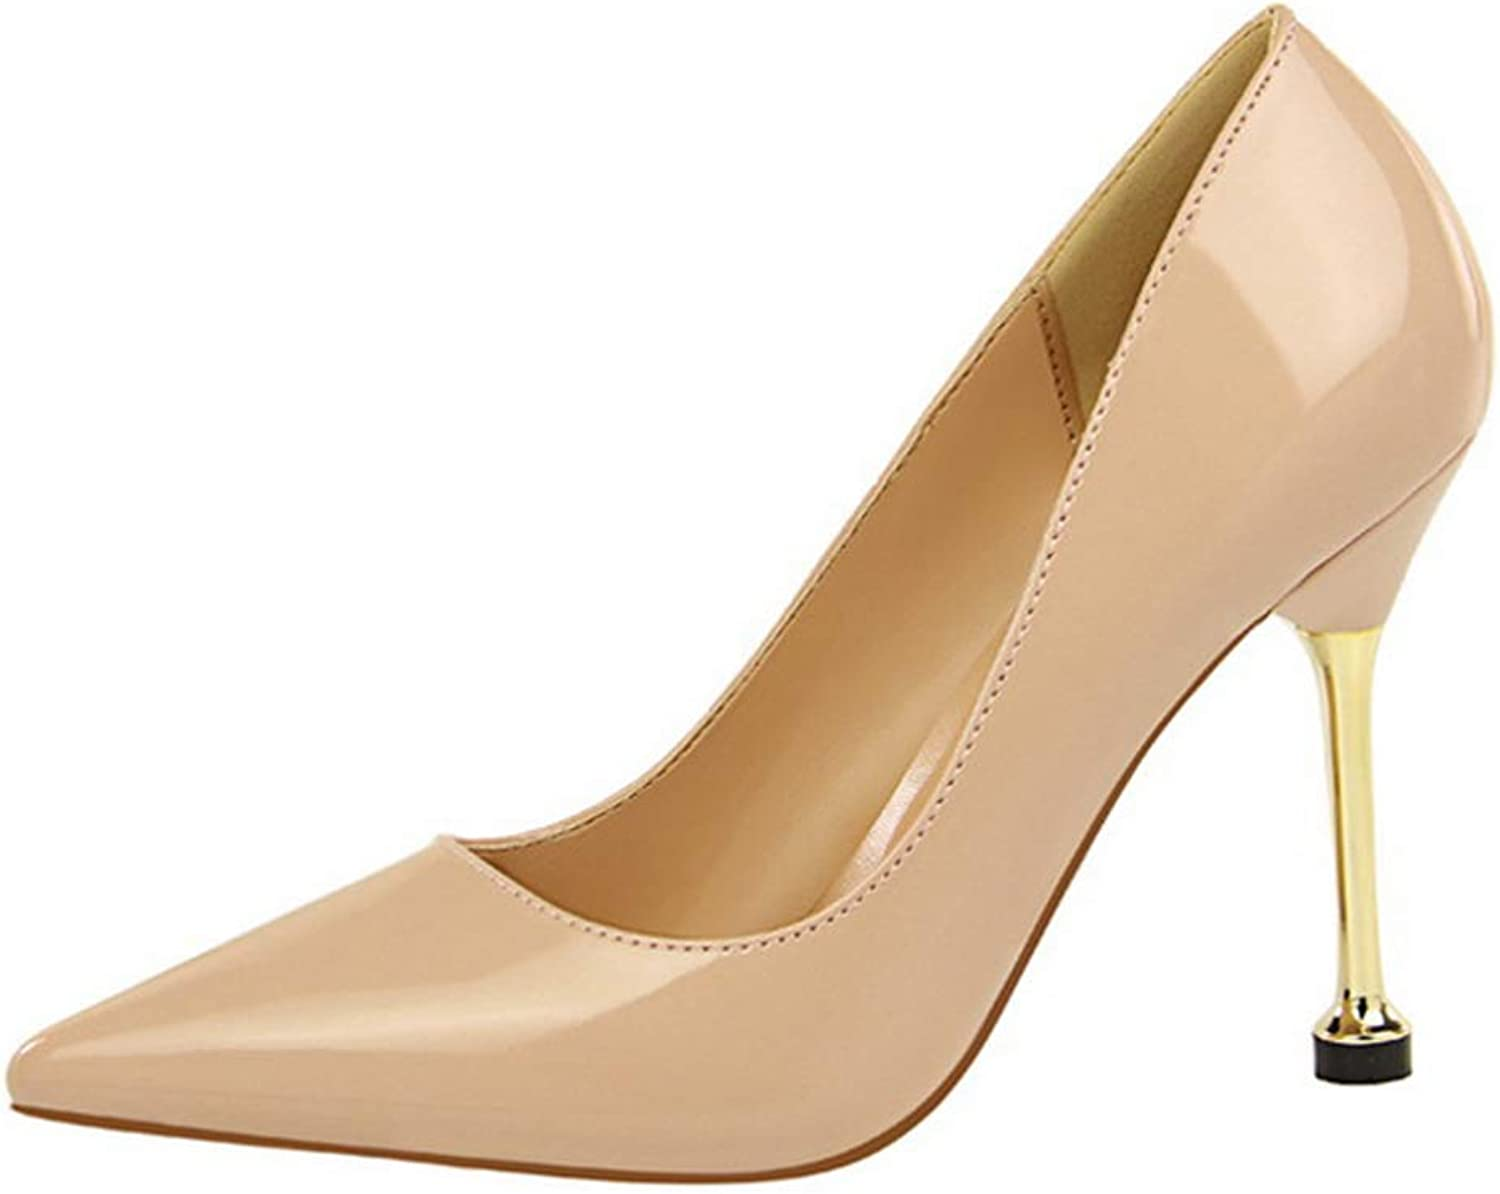 Drew Toby Women Pumps Shallow Fashion Pointed Toe Concise Patent Leather Office High Heels